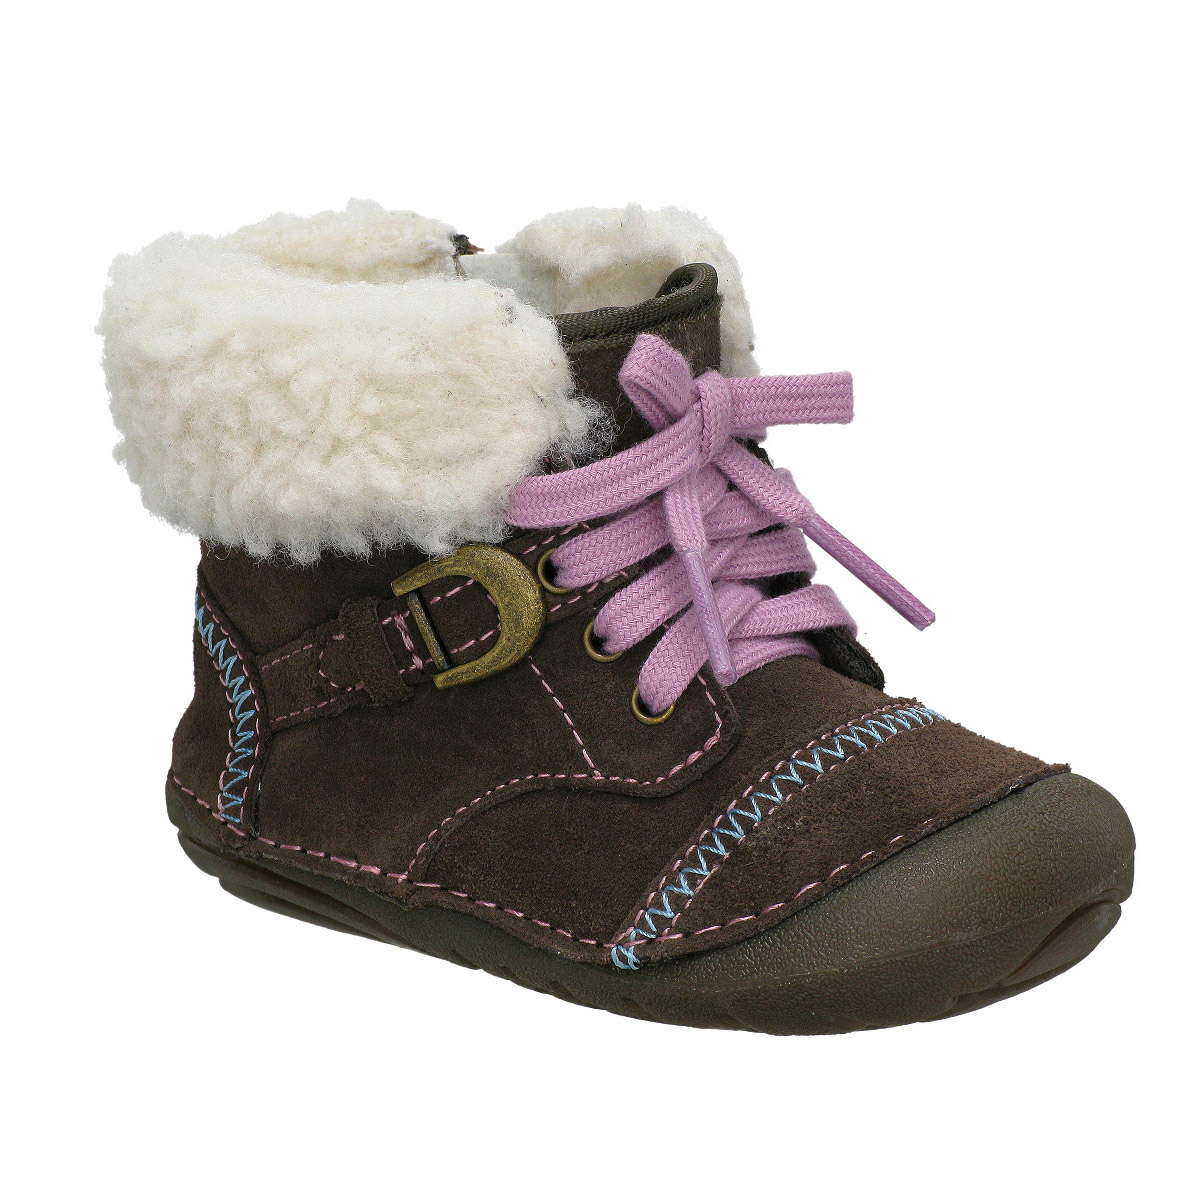 314a20d0ee1 Uggs For 9 Month Old | Mindwise